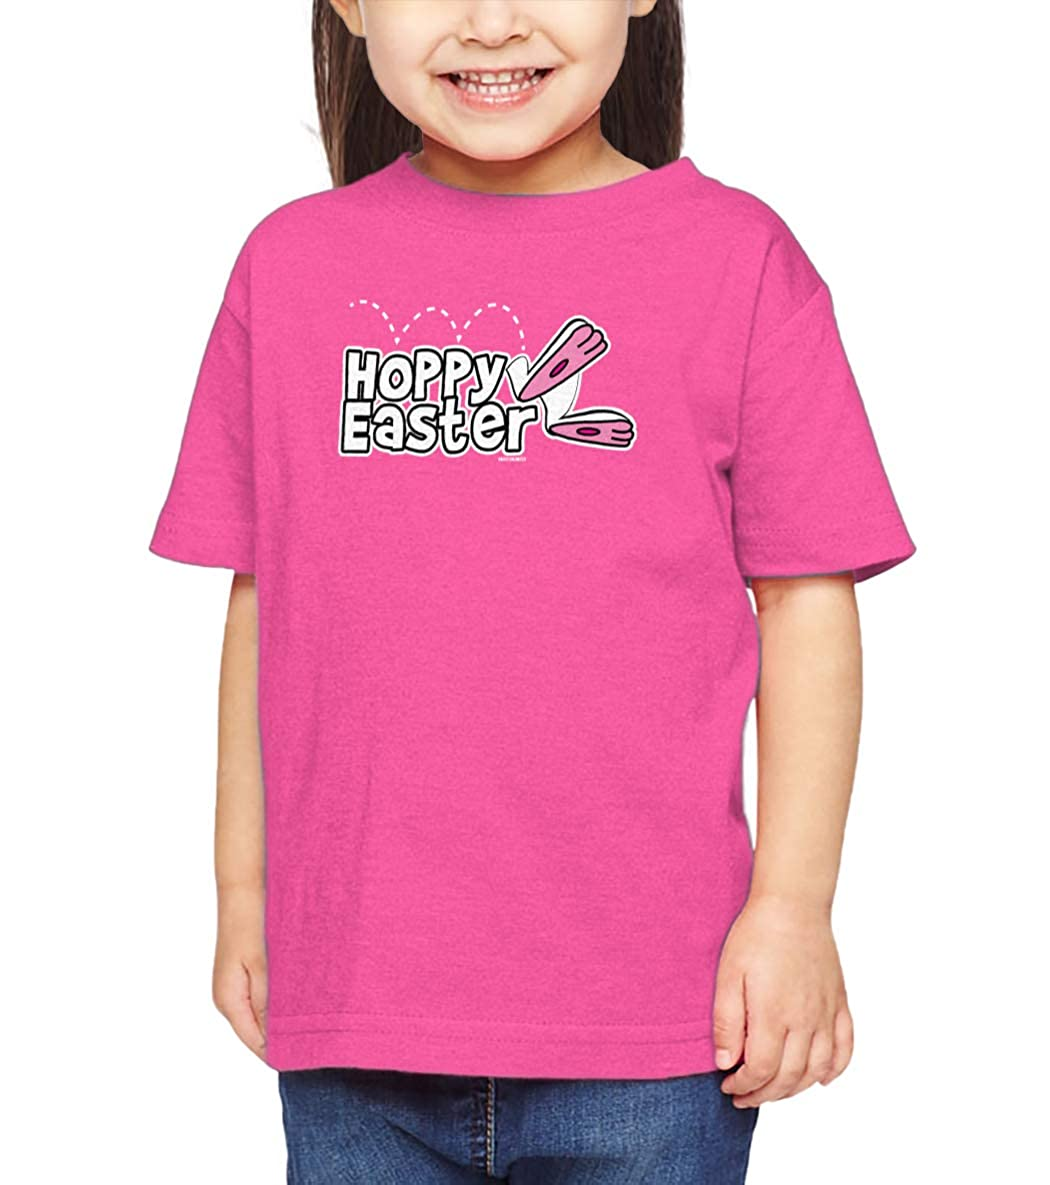 Happy Bunny Egg Infant//Toddler Cotton Jersey T-Shirt HAASE UNLIMITED Hoppy Easter